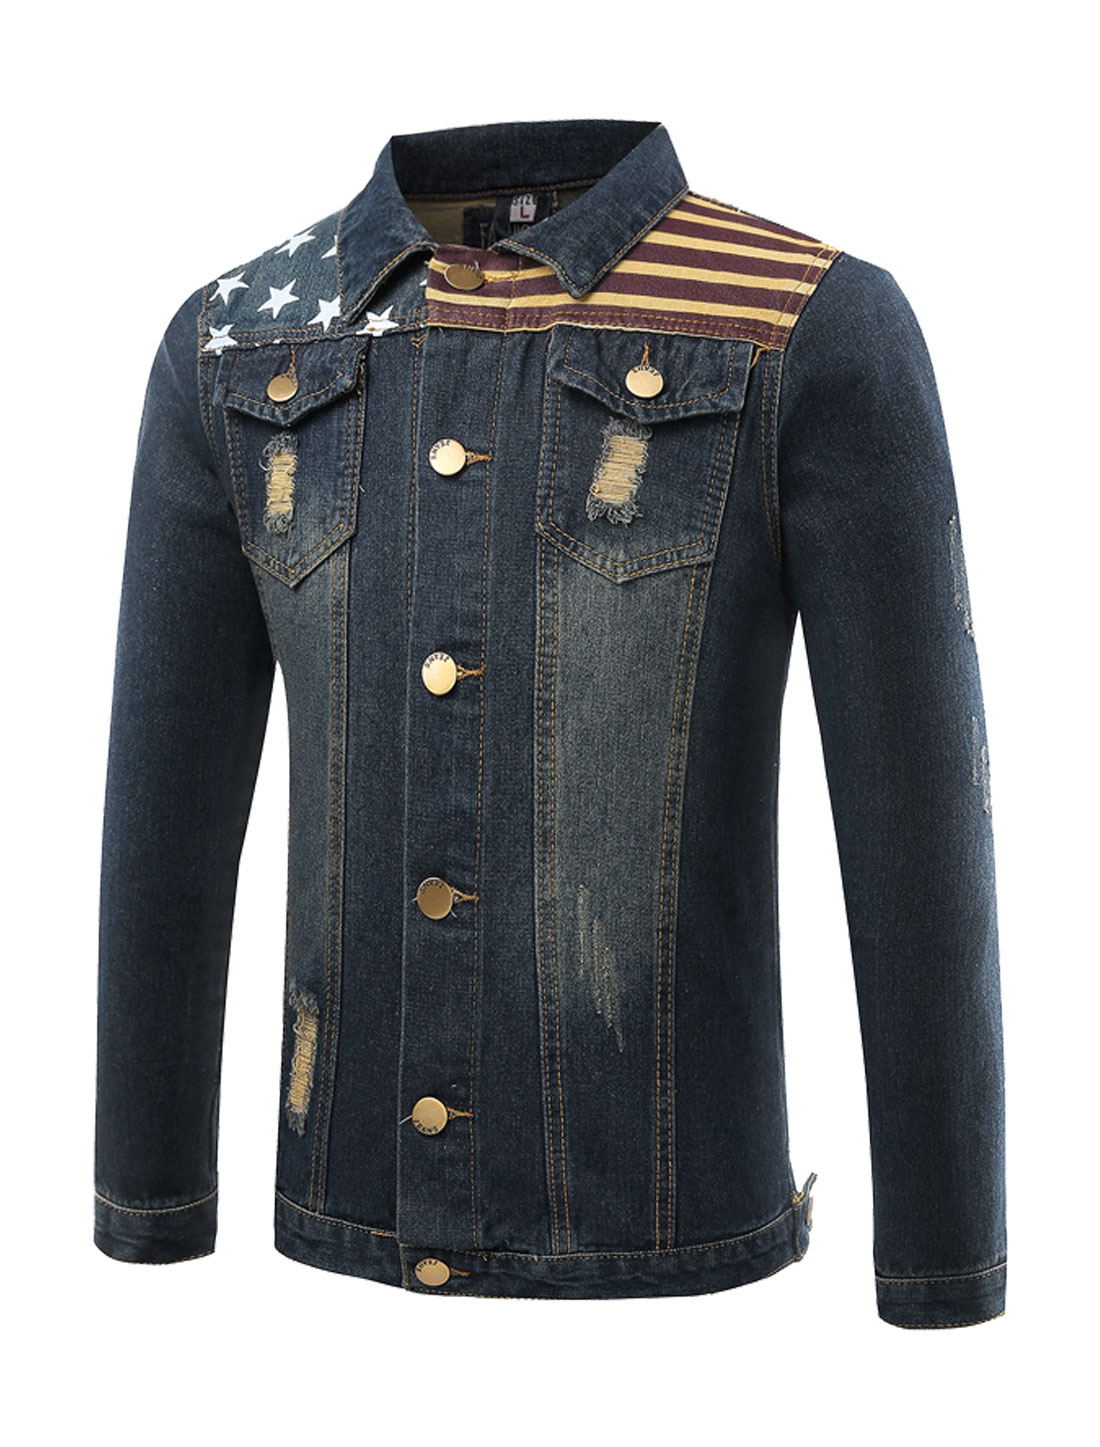 Man Stripes Stars Destroyed Slim Fit Denim Jacket Blue S